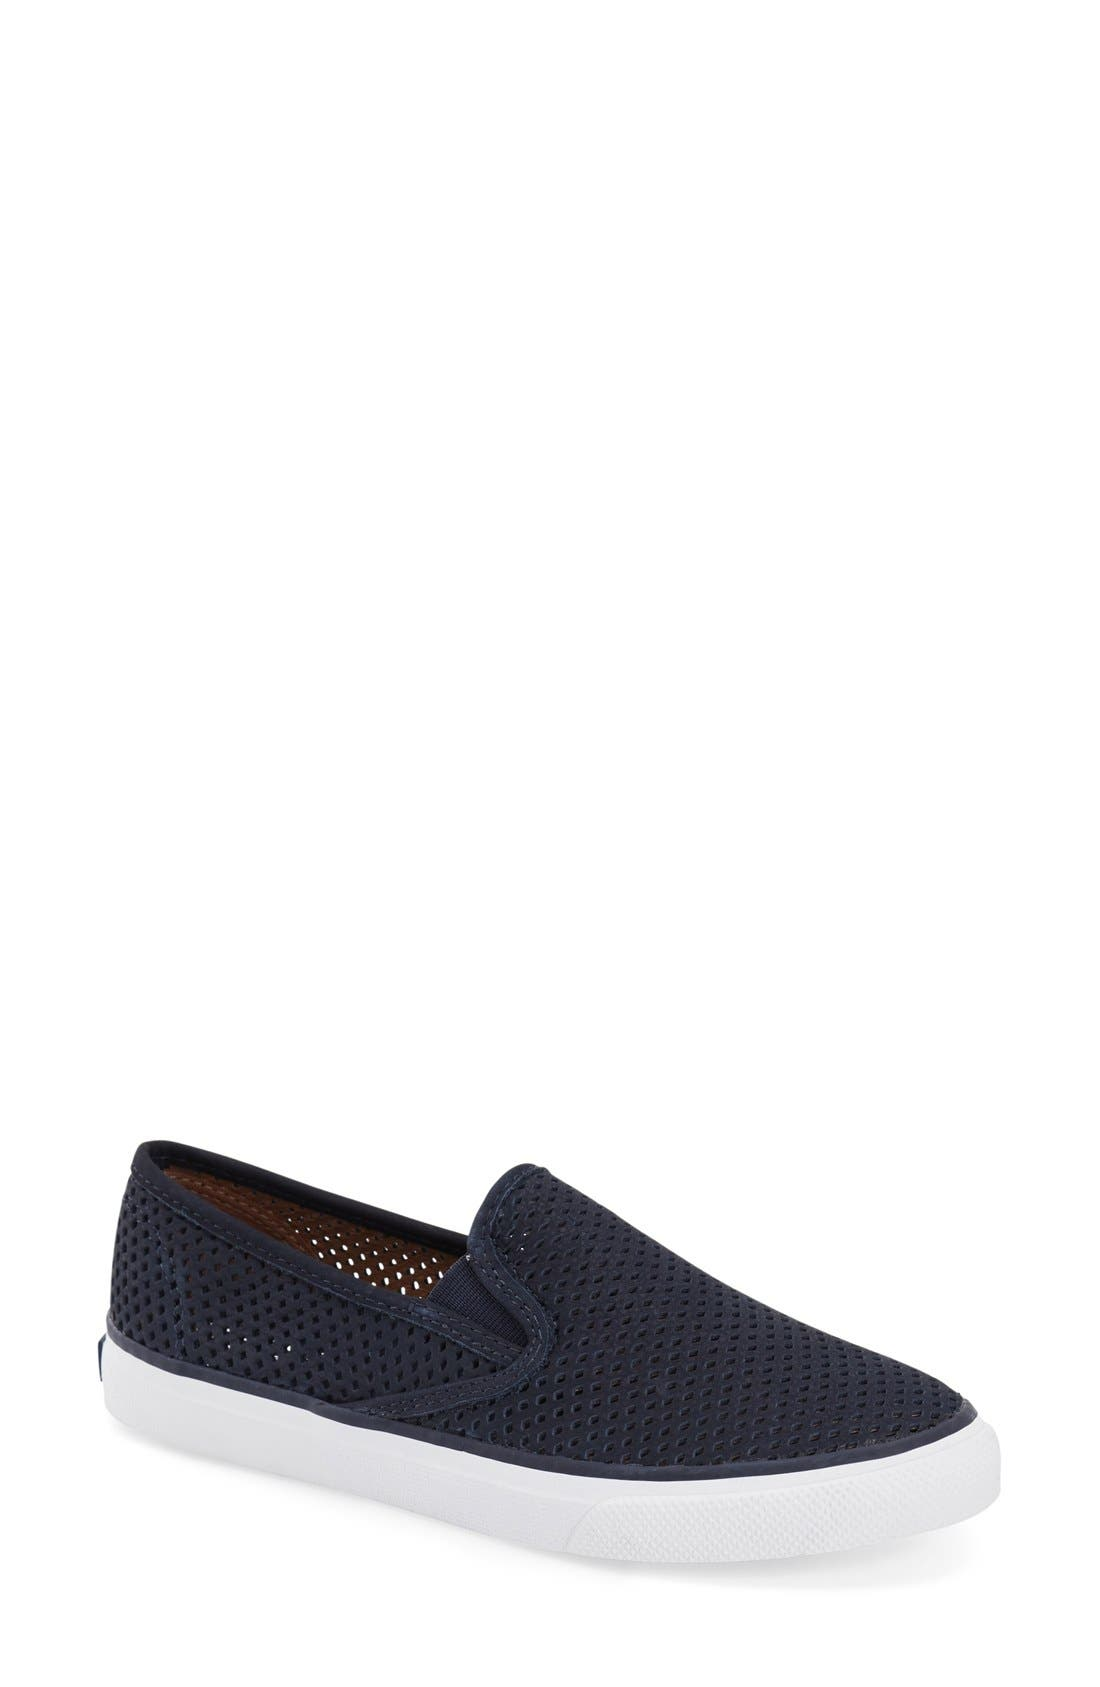 'Seaside' Perforated Slip-On Sneaker,                             Main thumbnail 8, color,